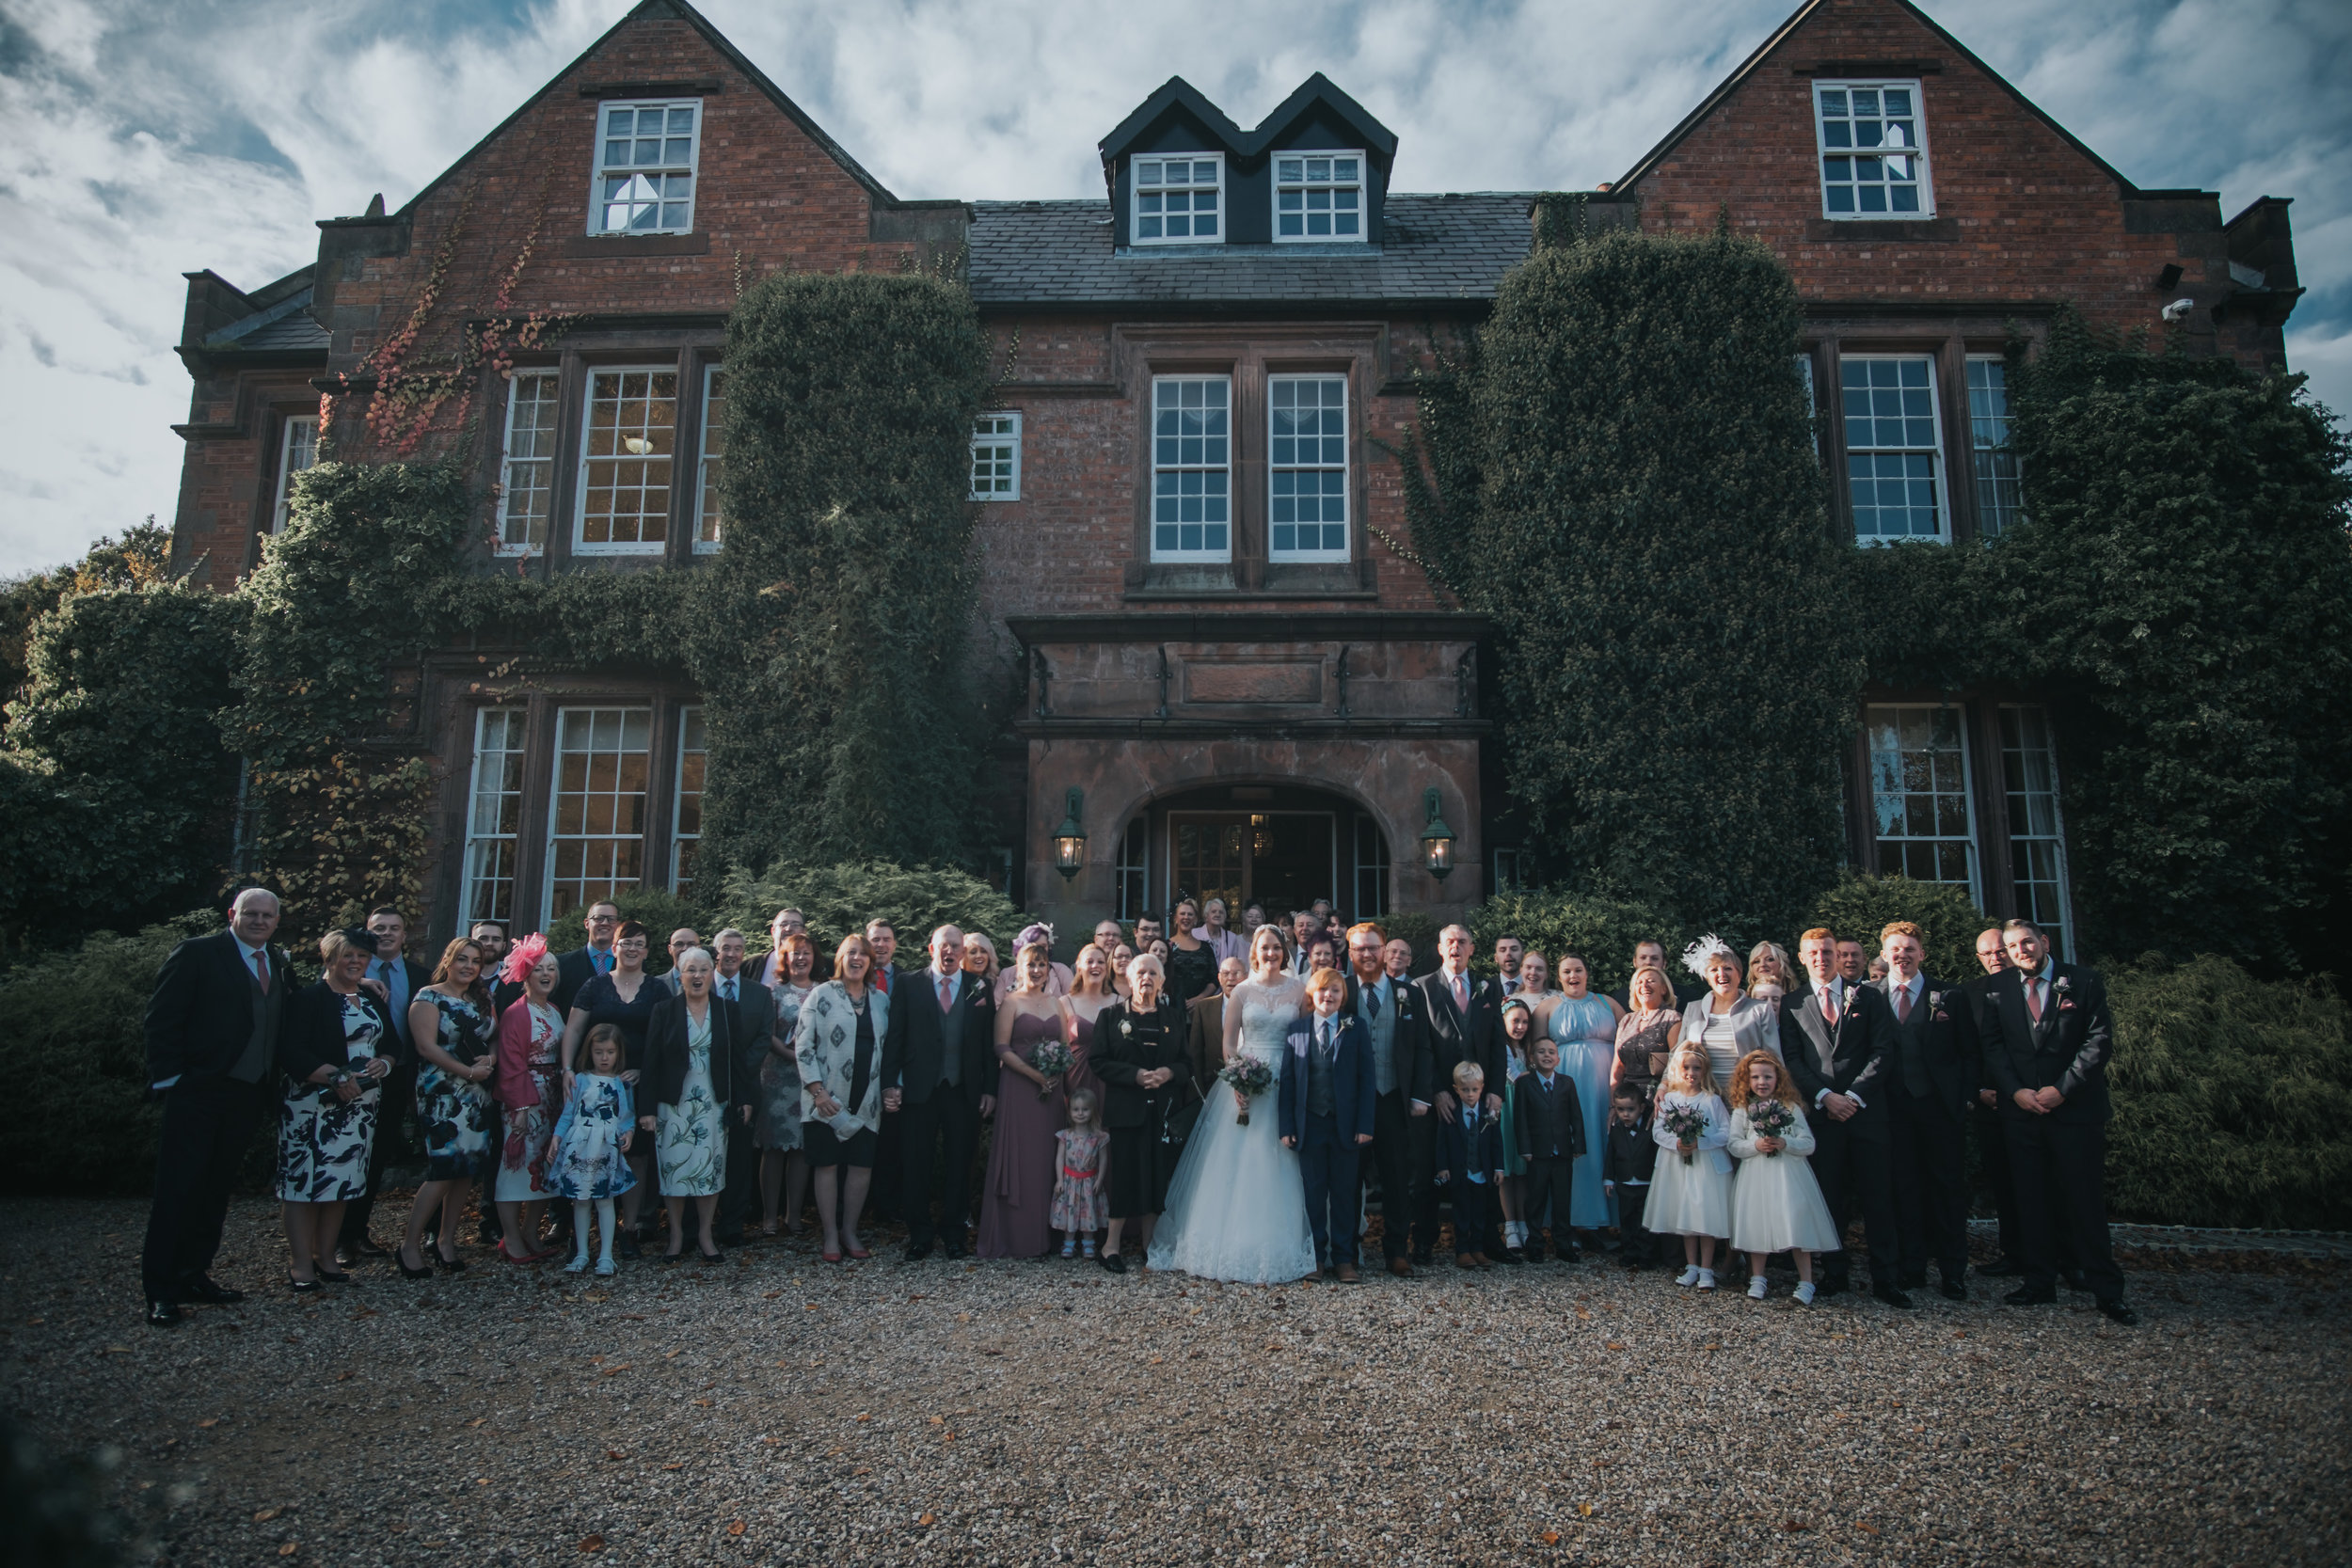 Vicky and Lee Wedding (264 of 590)-nunsmere hall wedding photographer in cheshire documentry wedding photography north west england.jpg